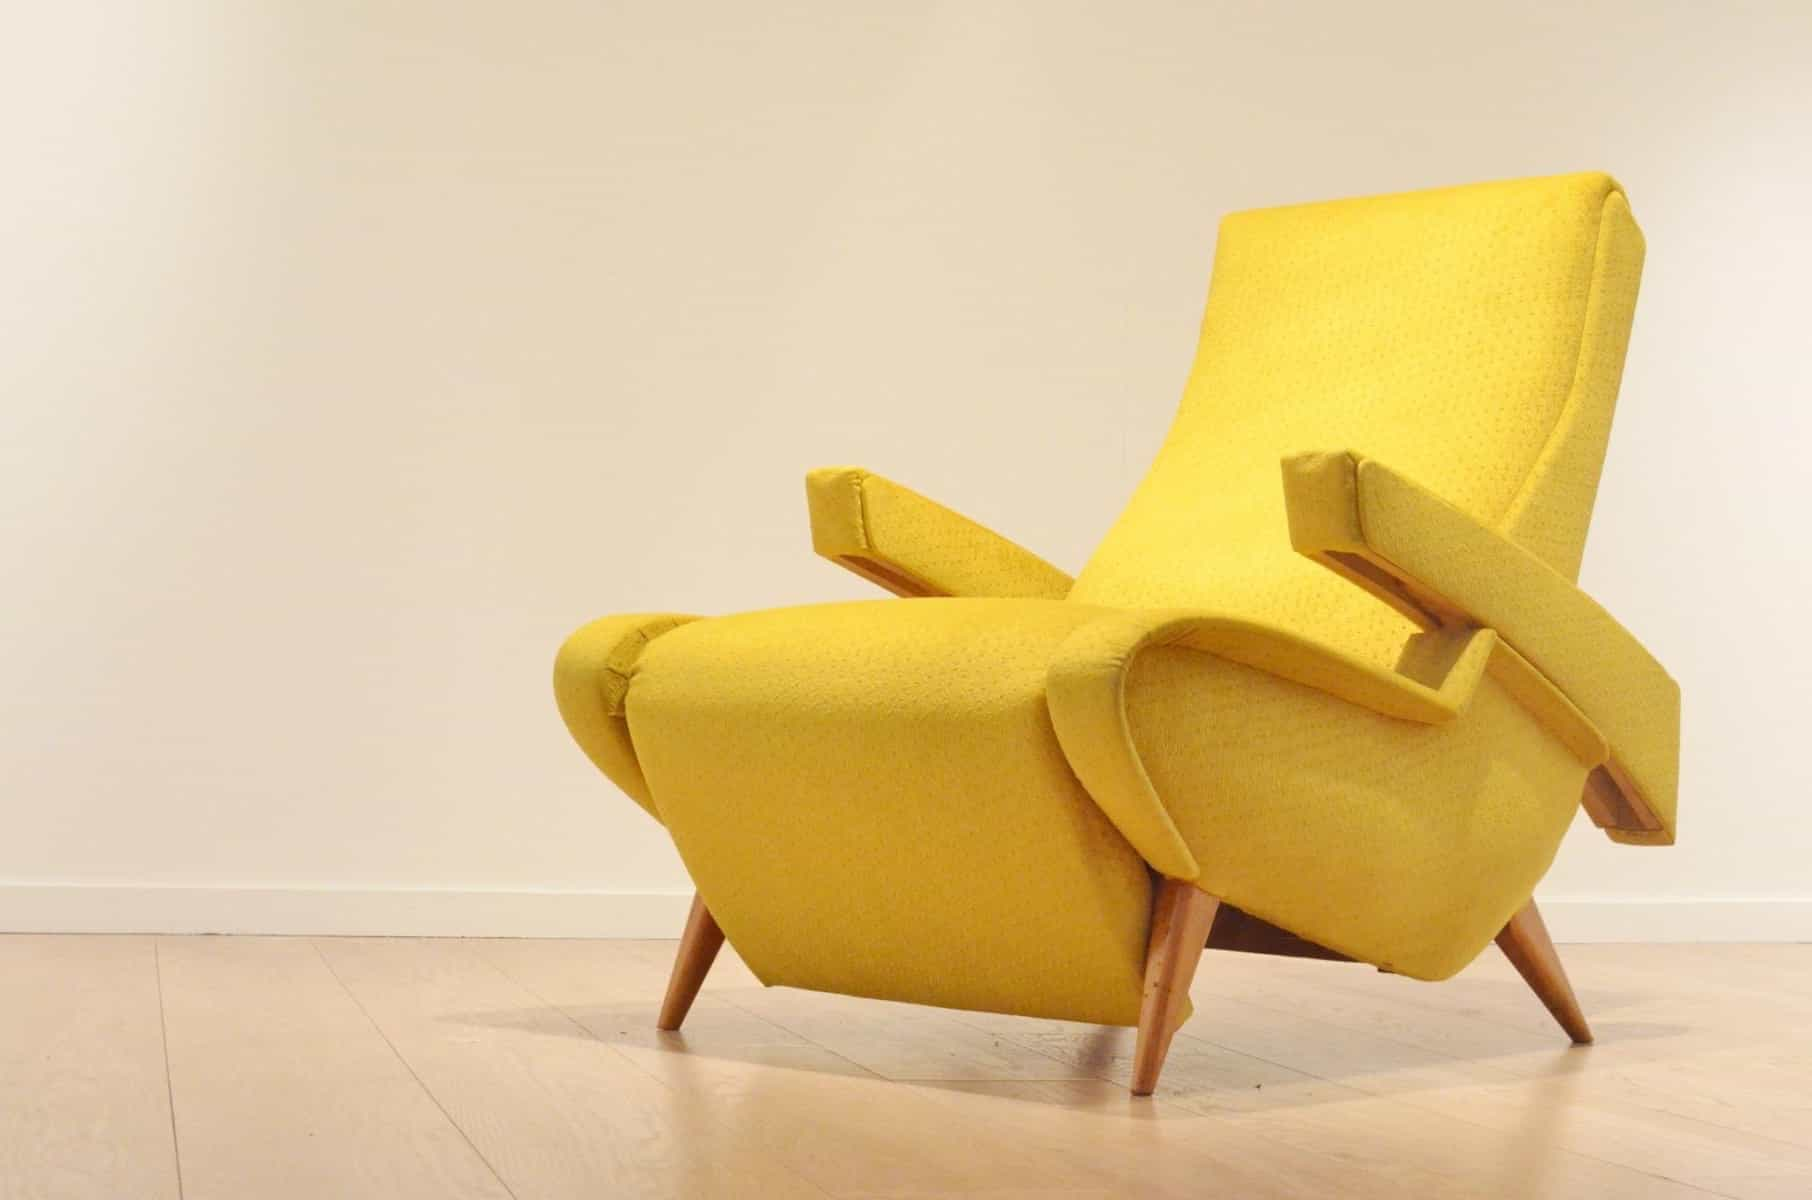 Stylish Unusual Lounge Chair Shape For Modern Living Room (Image 5 of 15)